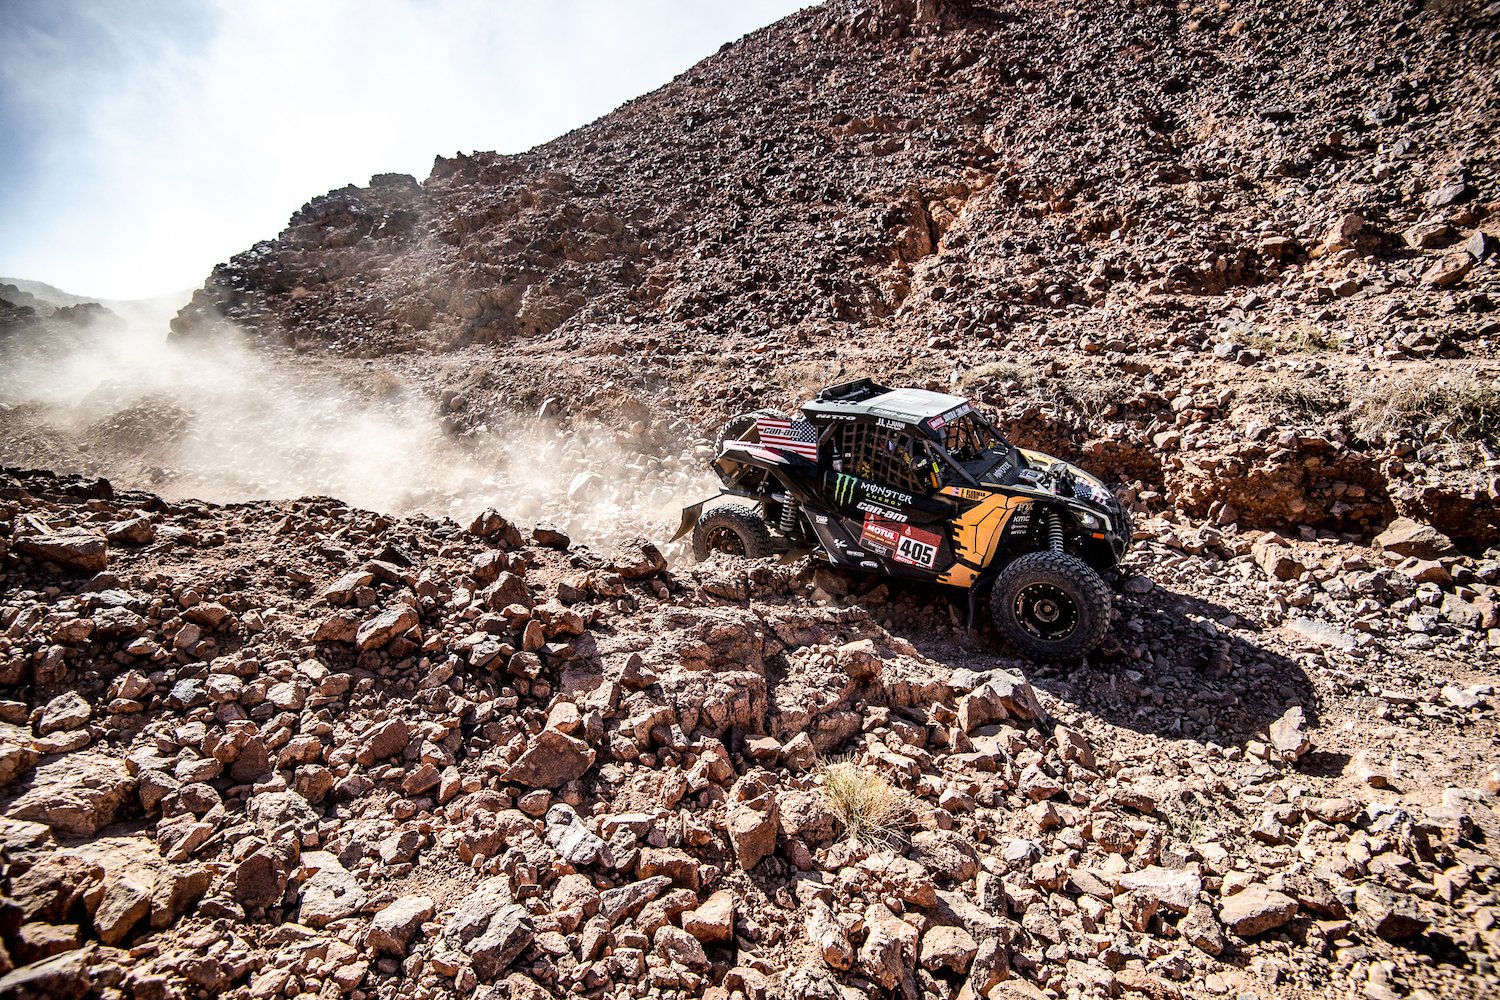 Casey Currie at Stage 2 of 2020 Dakar Rally